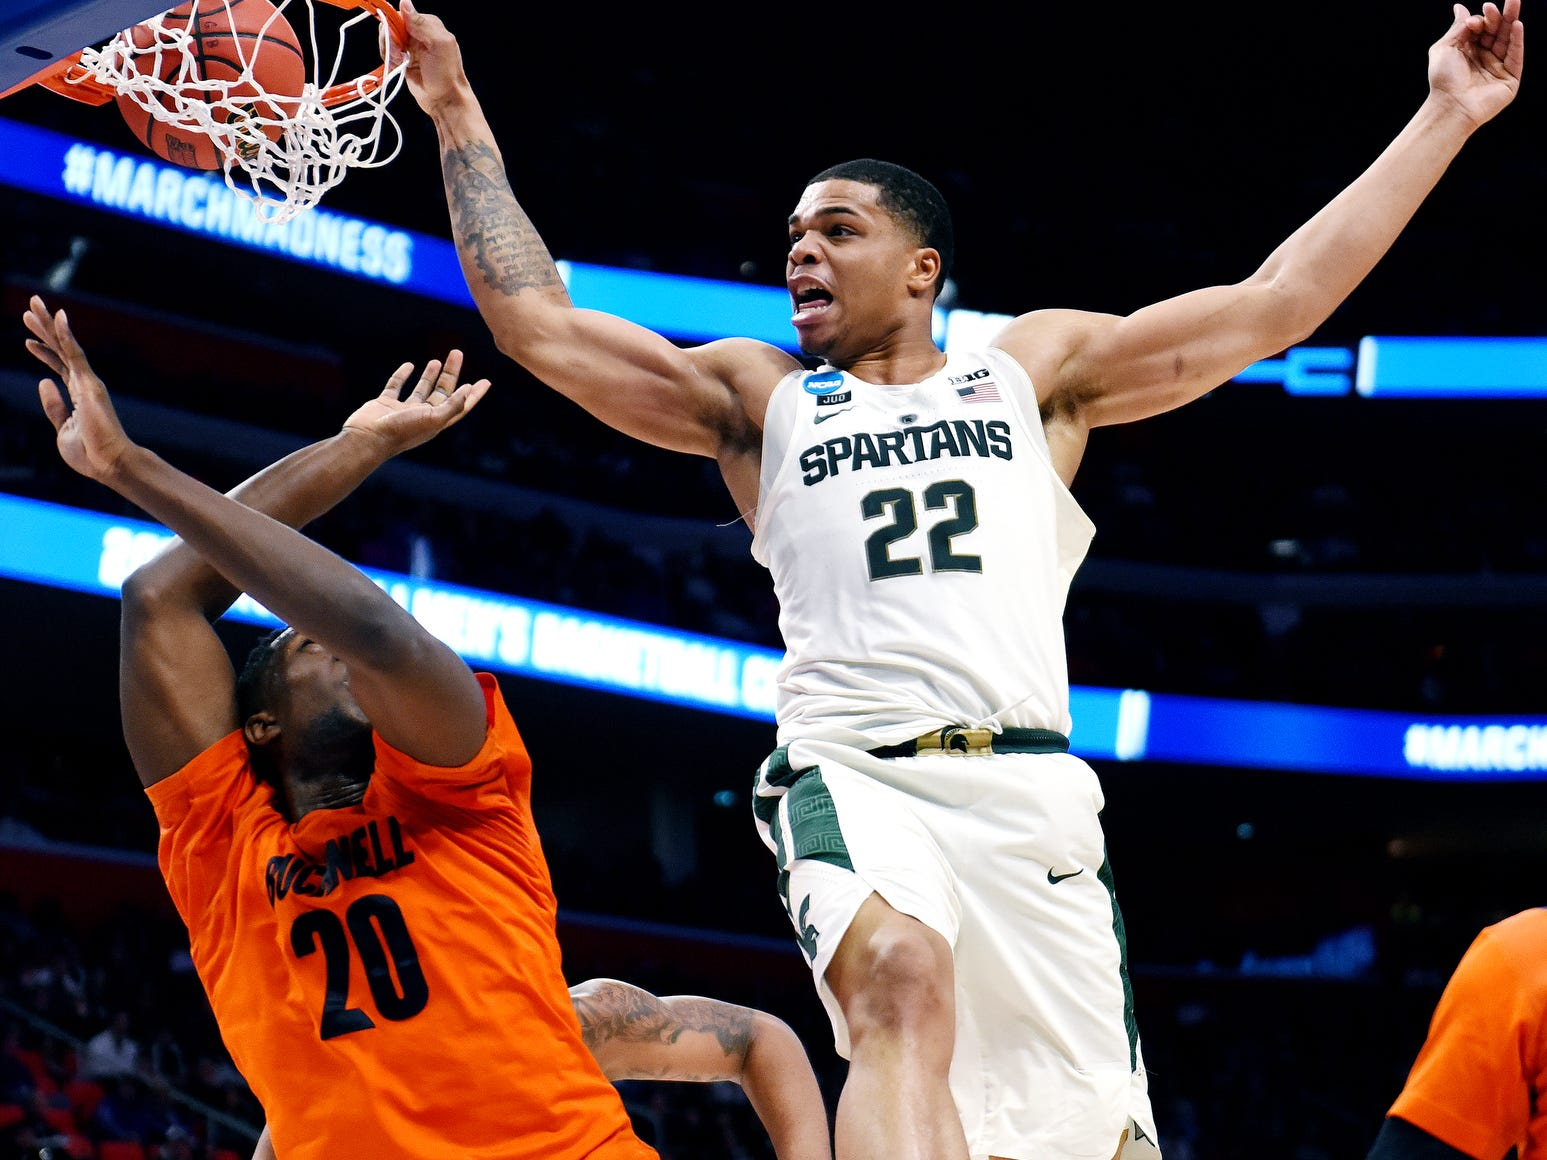 Michigan State's Miles Bridges, right, dunks over Bucknell's Nana Foulland during the second half on Friday, March 16, 2018, at the Little Caesars Arena in Detroit. The Spartans beat Bucknell 82-78 to advance to the second round in the NCAA tournament.